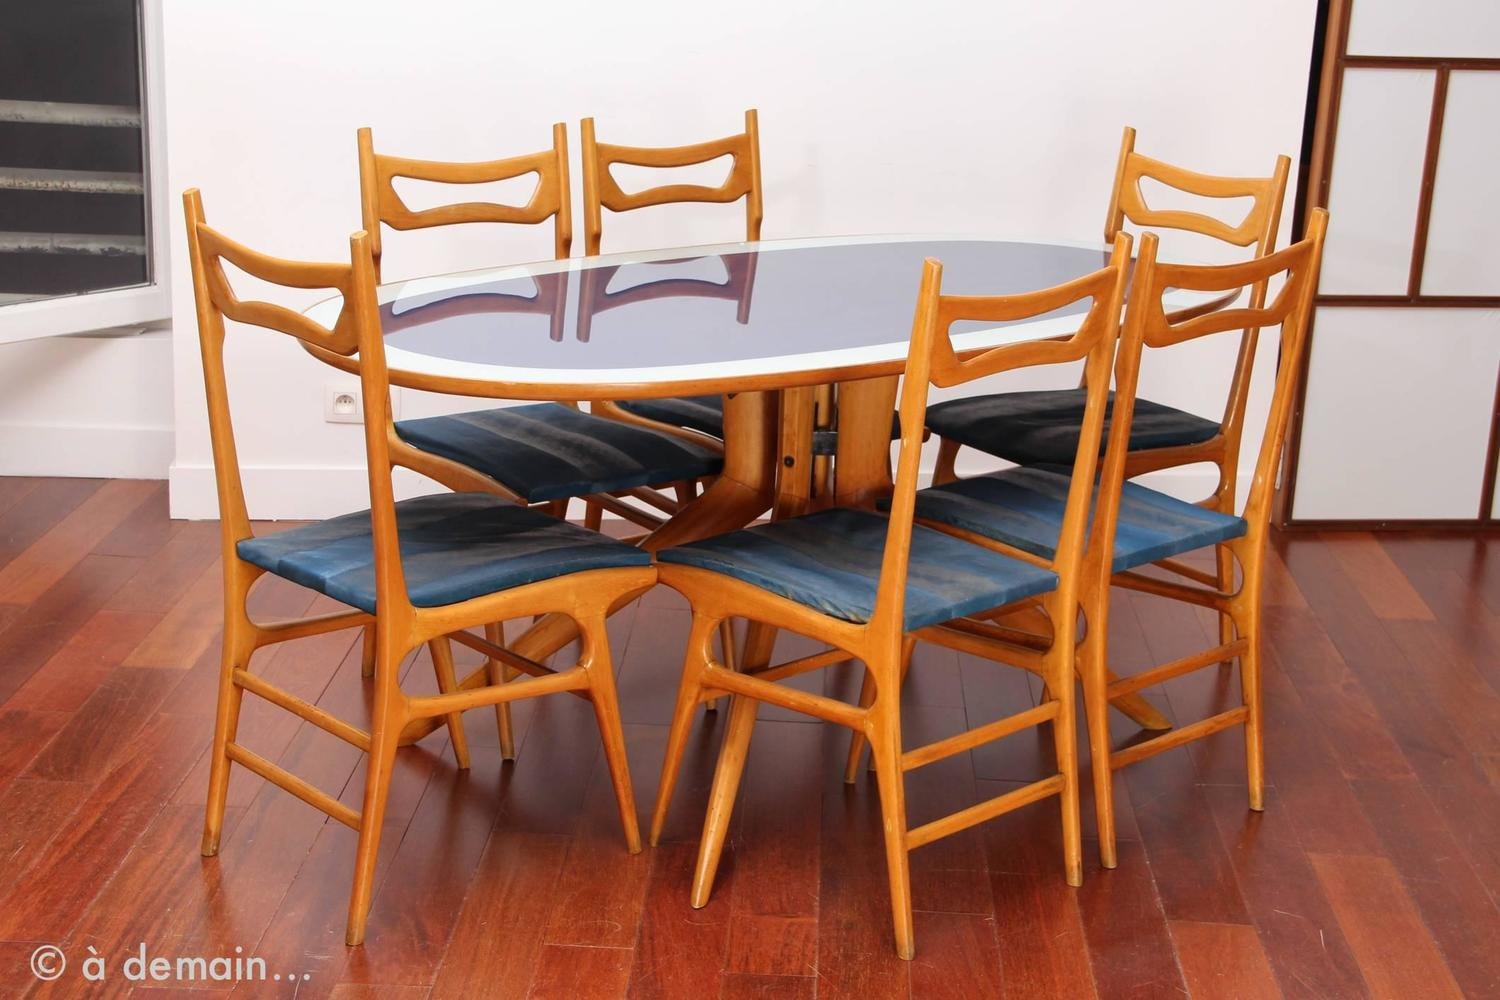 rare modernist italian dining room set in the style of ico parisi from